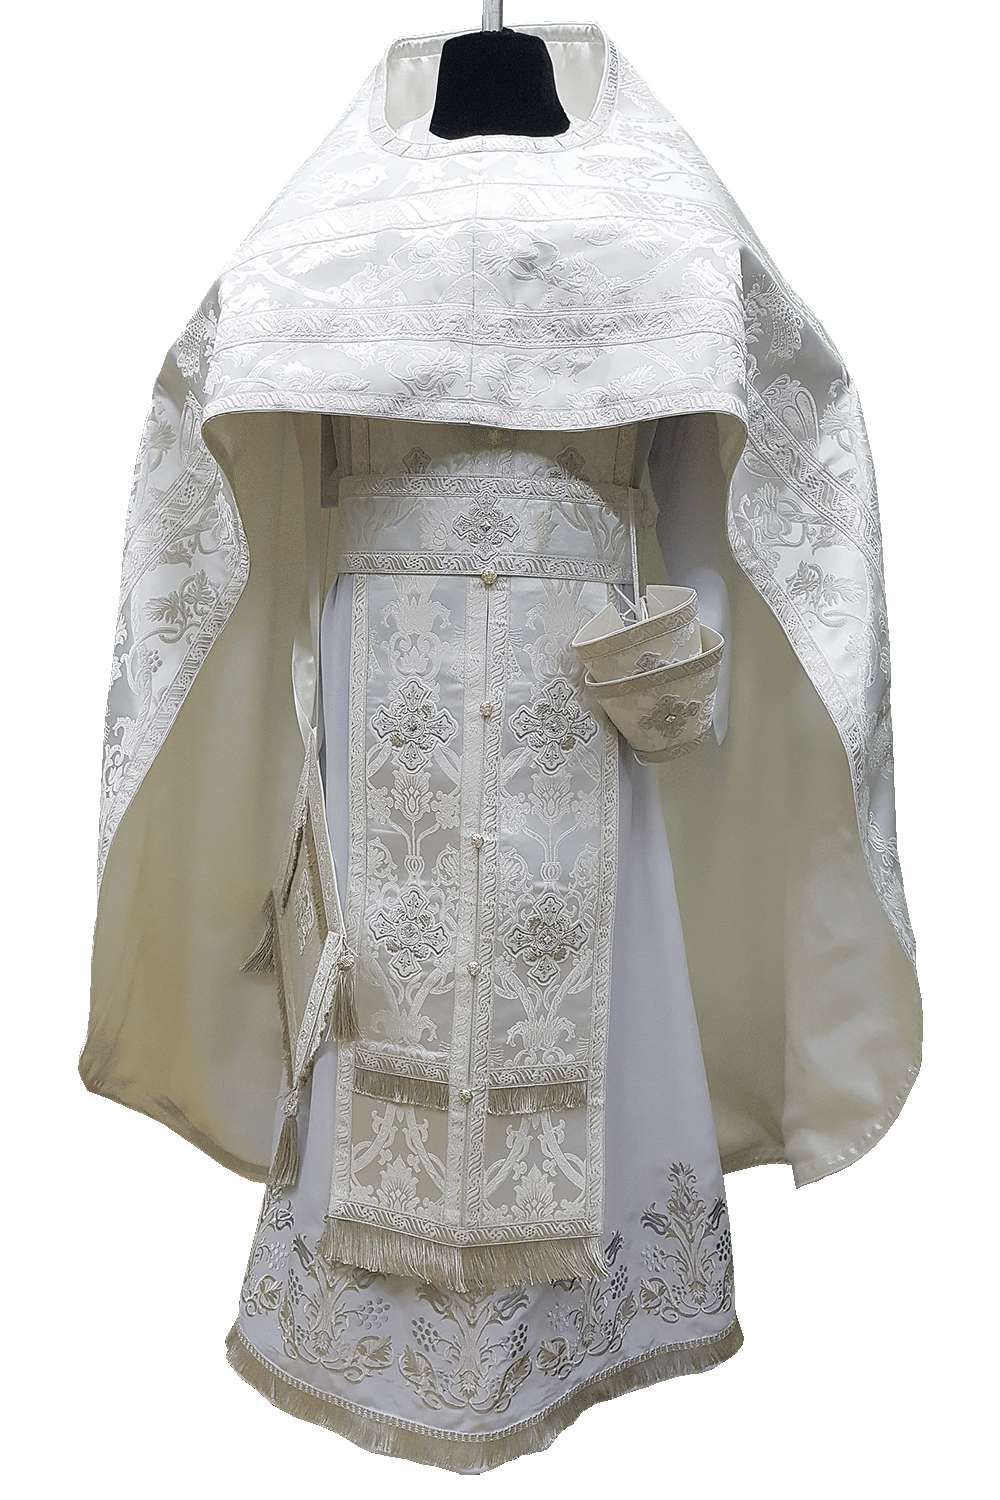 PRIEST VESTMENT WHITE • buy | for sale >>> ORTHODOX in 2020 | Vestment,  Russian fashion, Orthodox